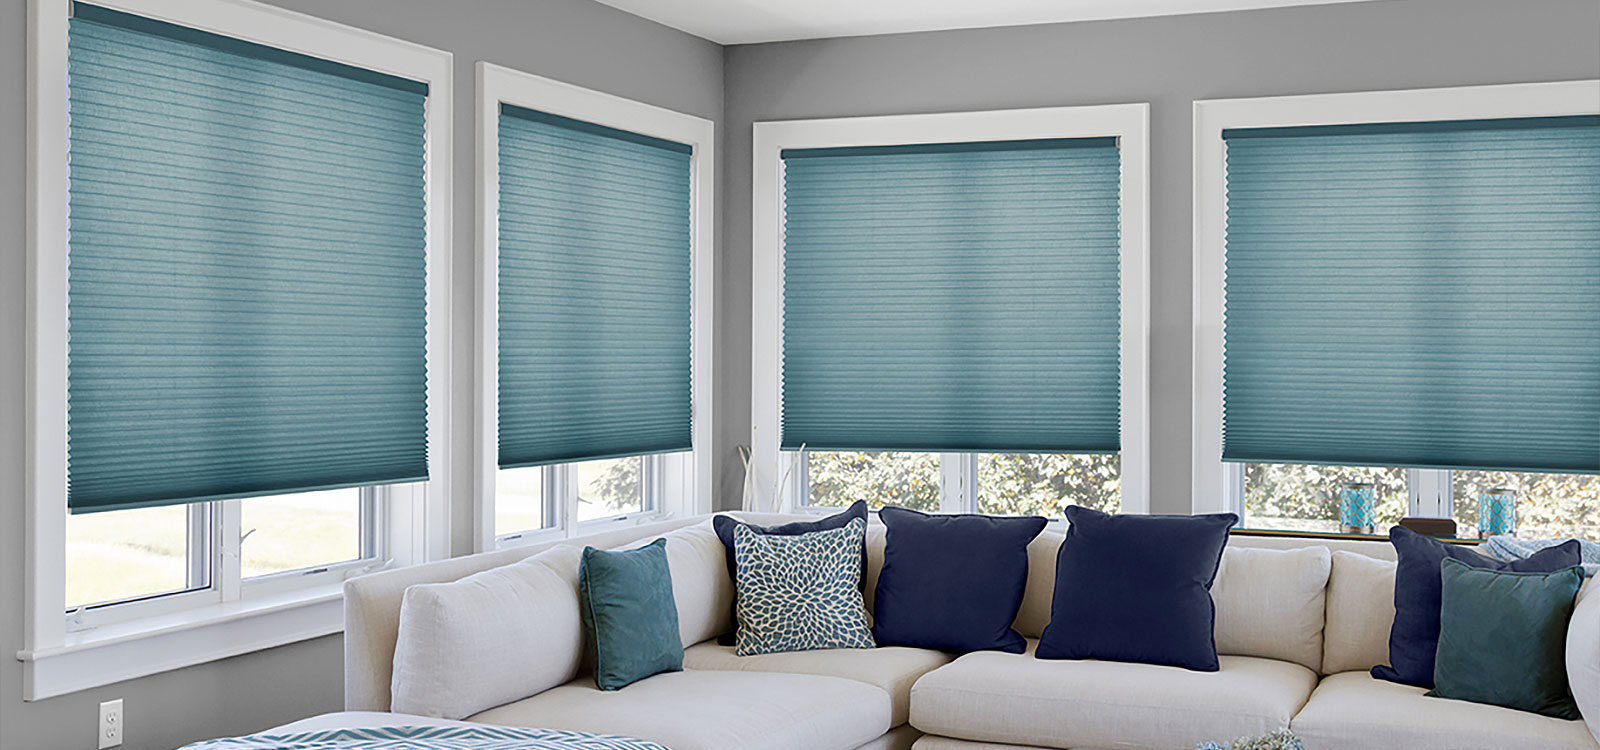 Lookout Blinds And Shutters Blinds Shutters Shades And